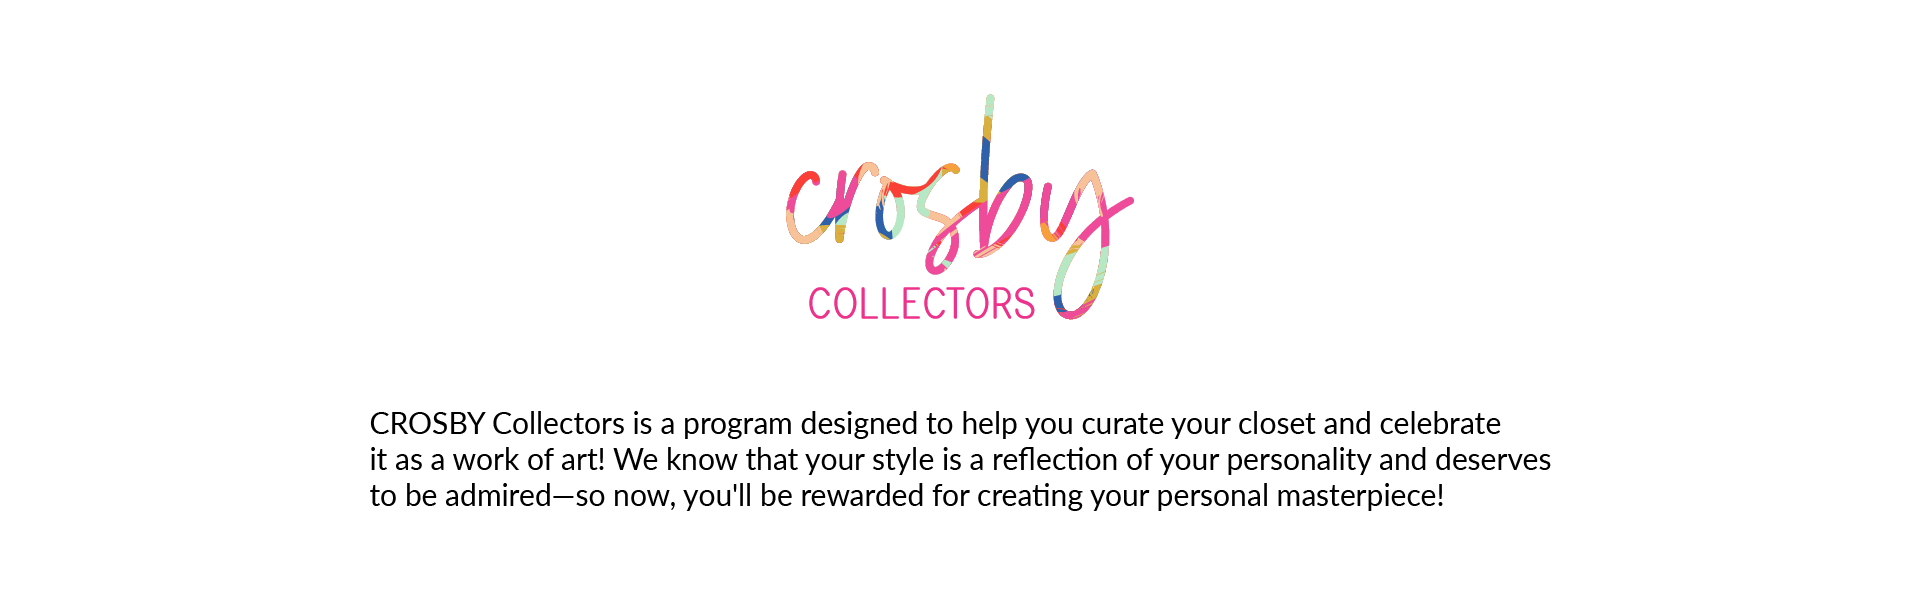 CROSBY Collectors Logo. CROSBY Collectors is a program designed to help you curate your closet and celebrateit as a work of art! We know that your style is a reflection of your personality and deservesto be admired—so now, you'll be rewarded for creating your personal masterpiece!